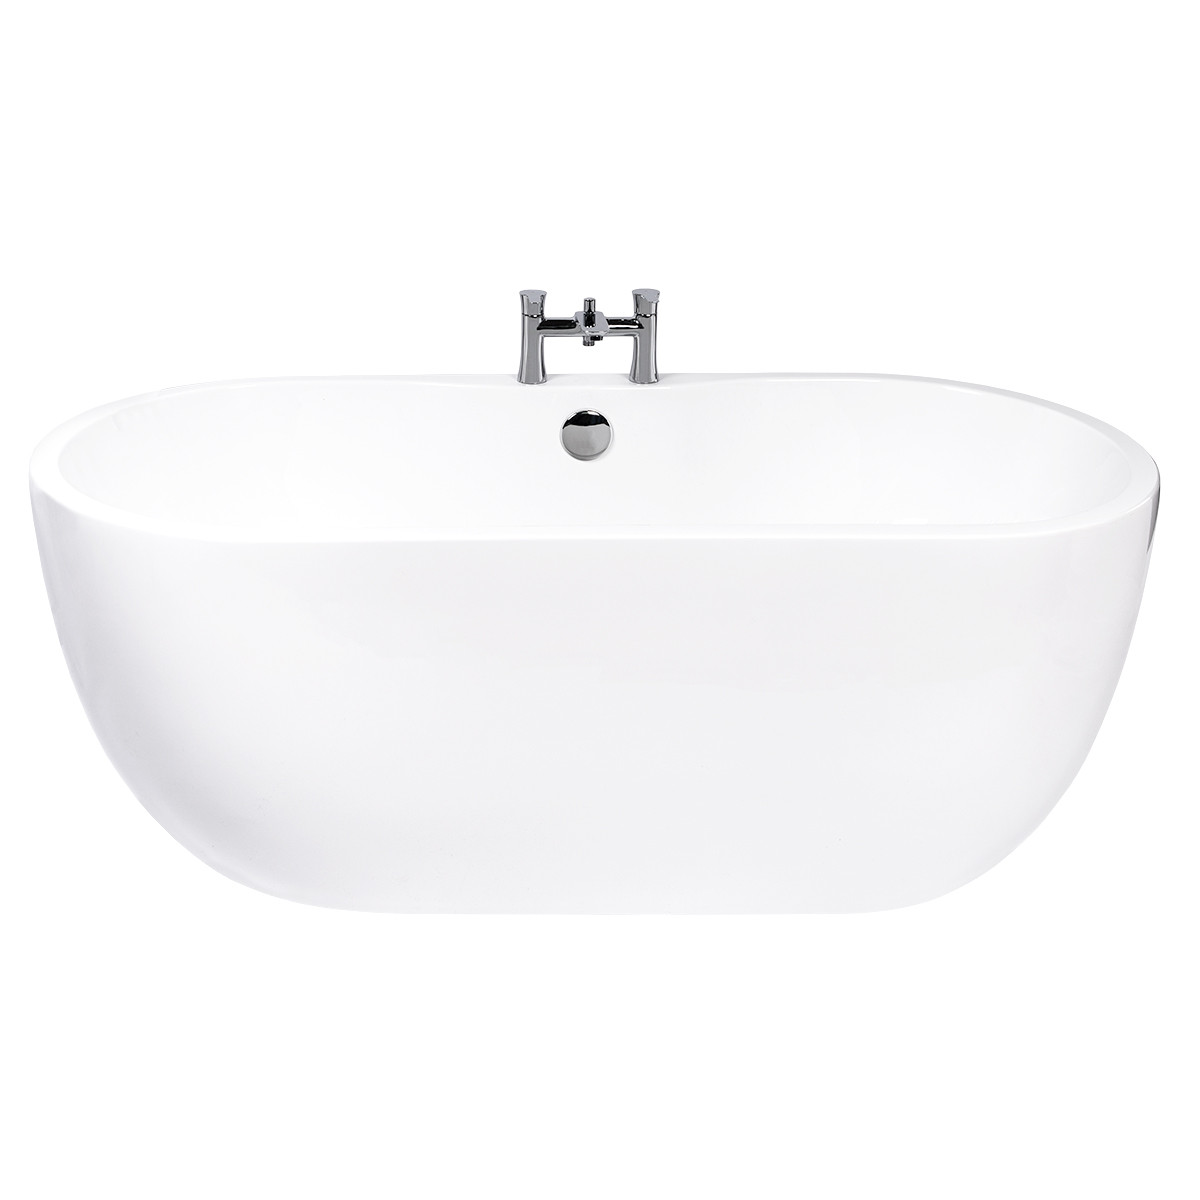 Florence 1800 Double Ended Freestanding Bath